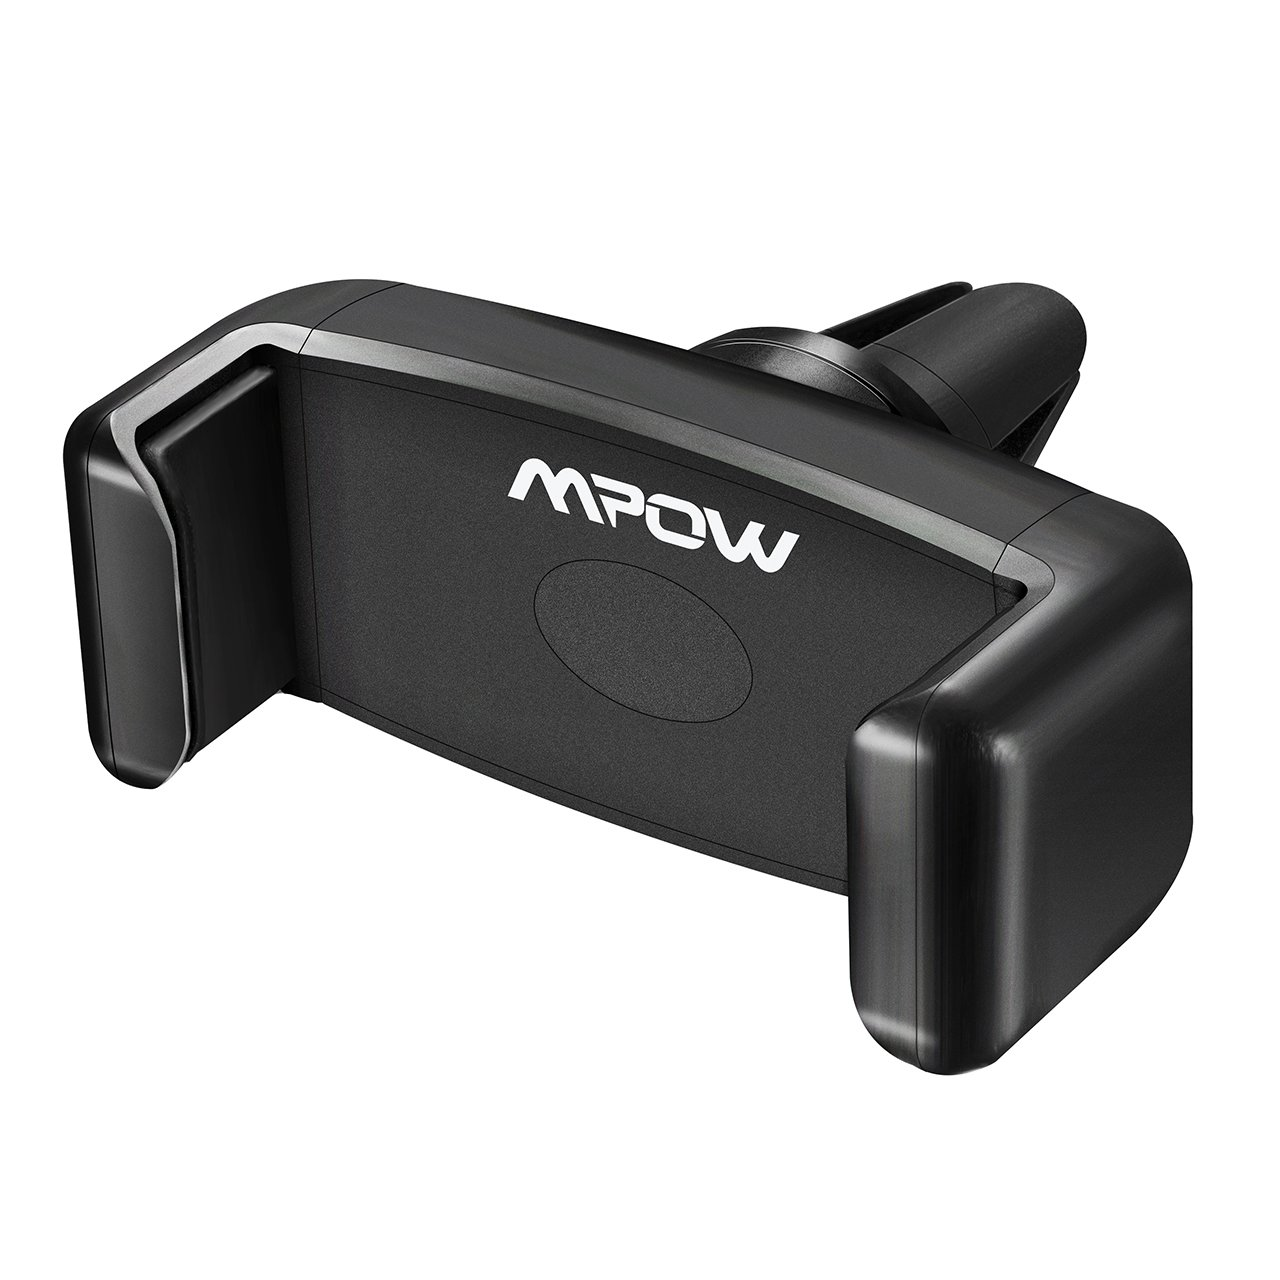 Car Phone Holder Mpow Air Vent Cars Mount 360 Small Choyo Bag Smartphone Ampamp Gps Electronics